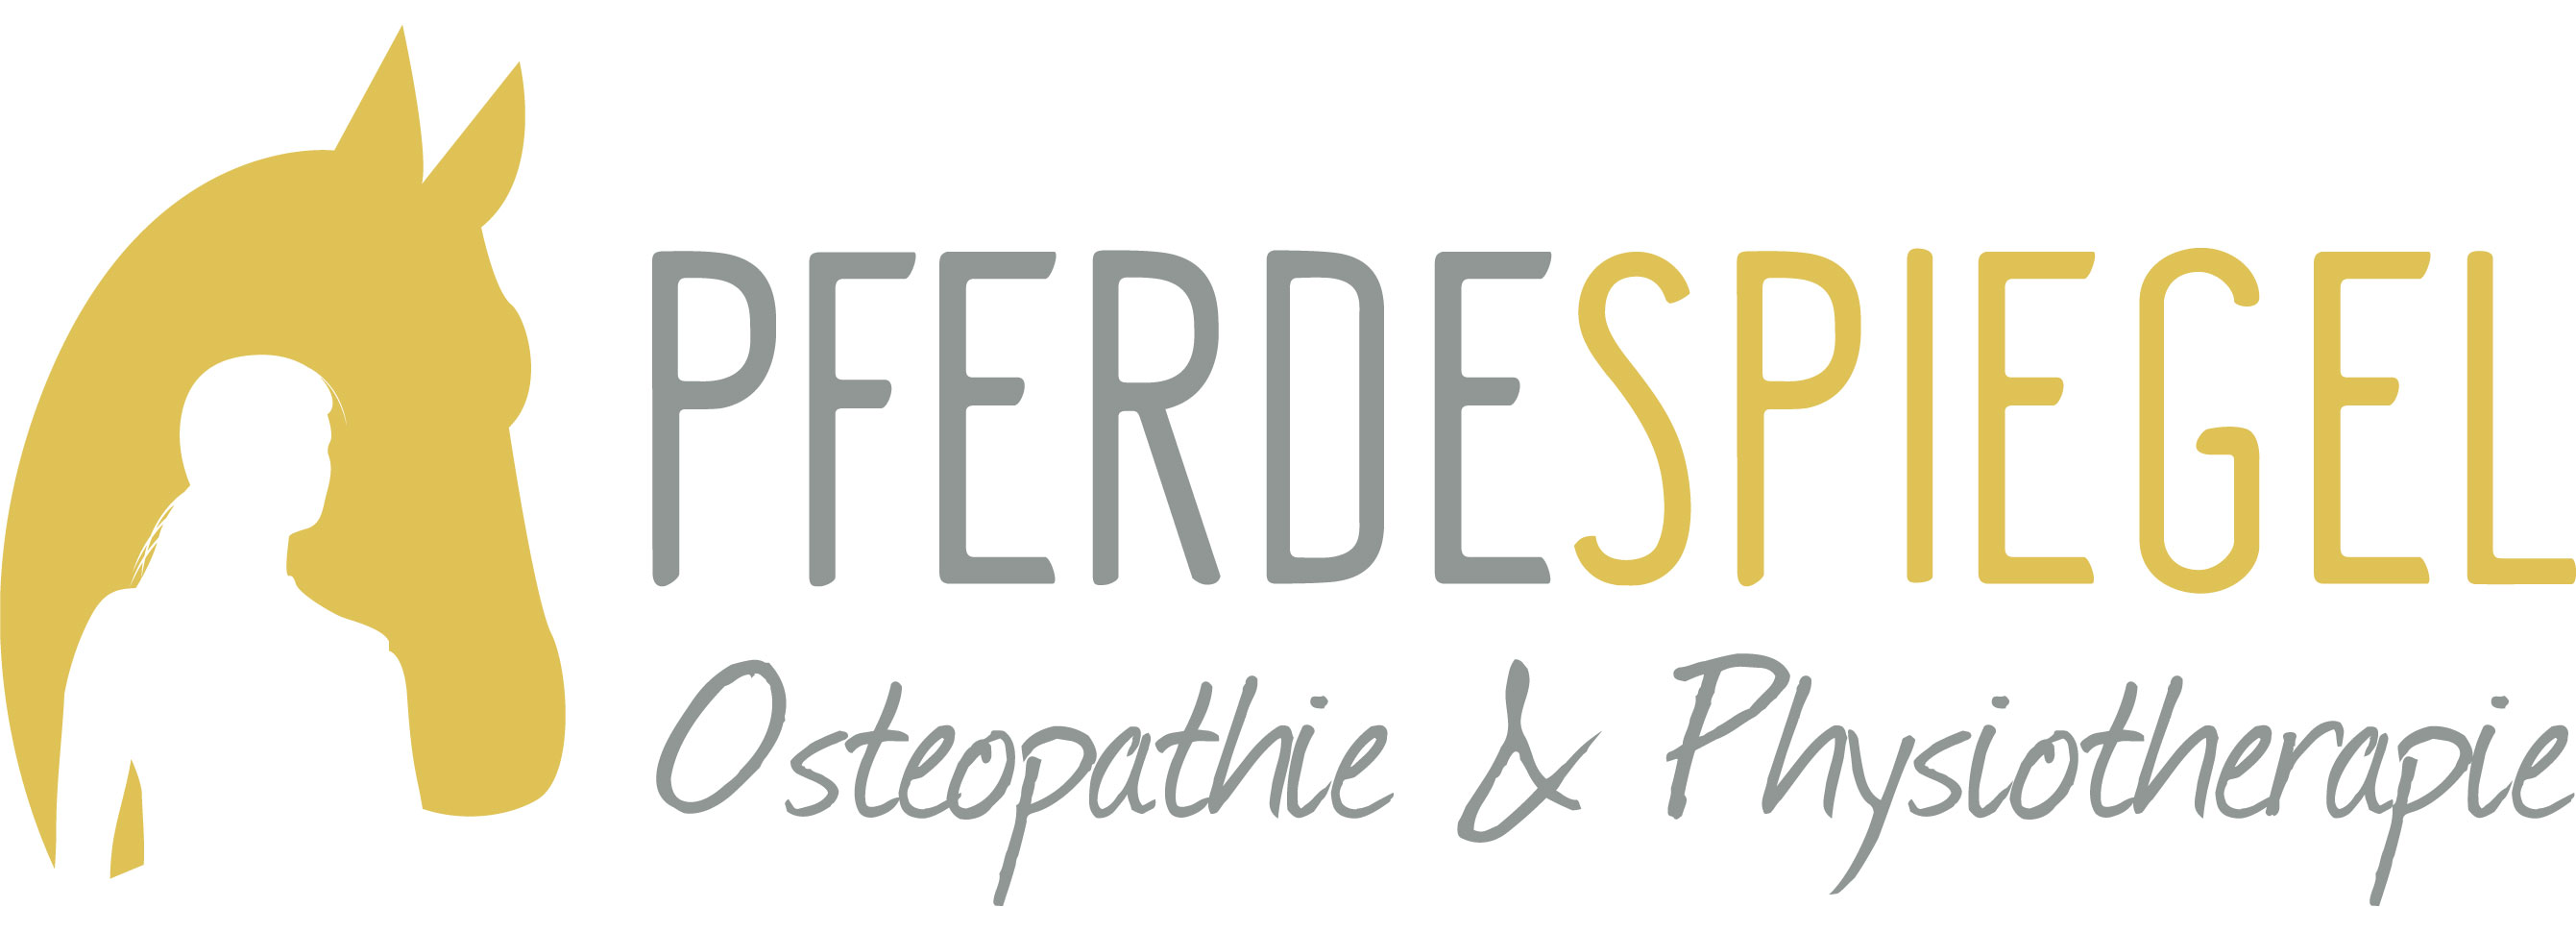 Physiotherapie & Osteopathie für Pferde in Berlin & Brandenburg